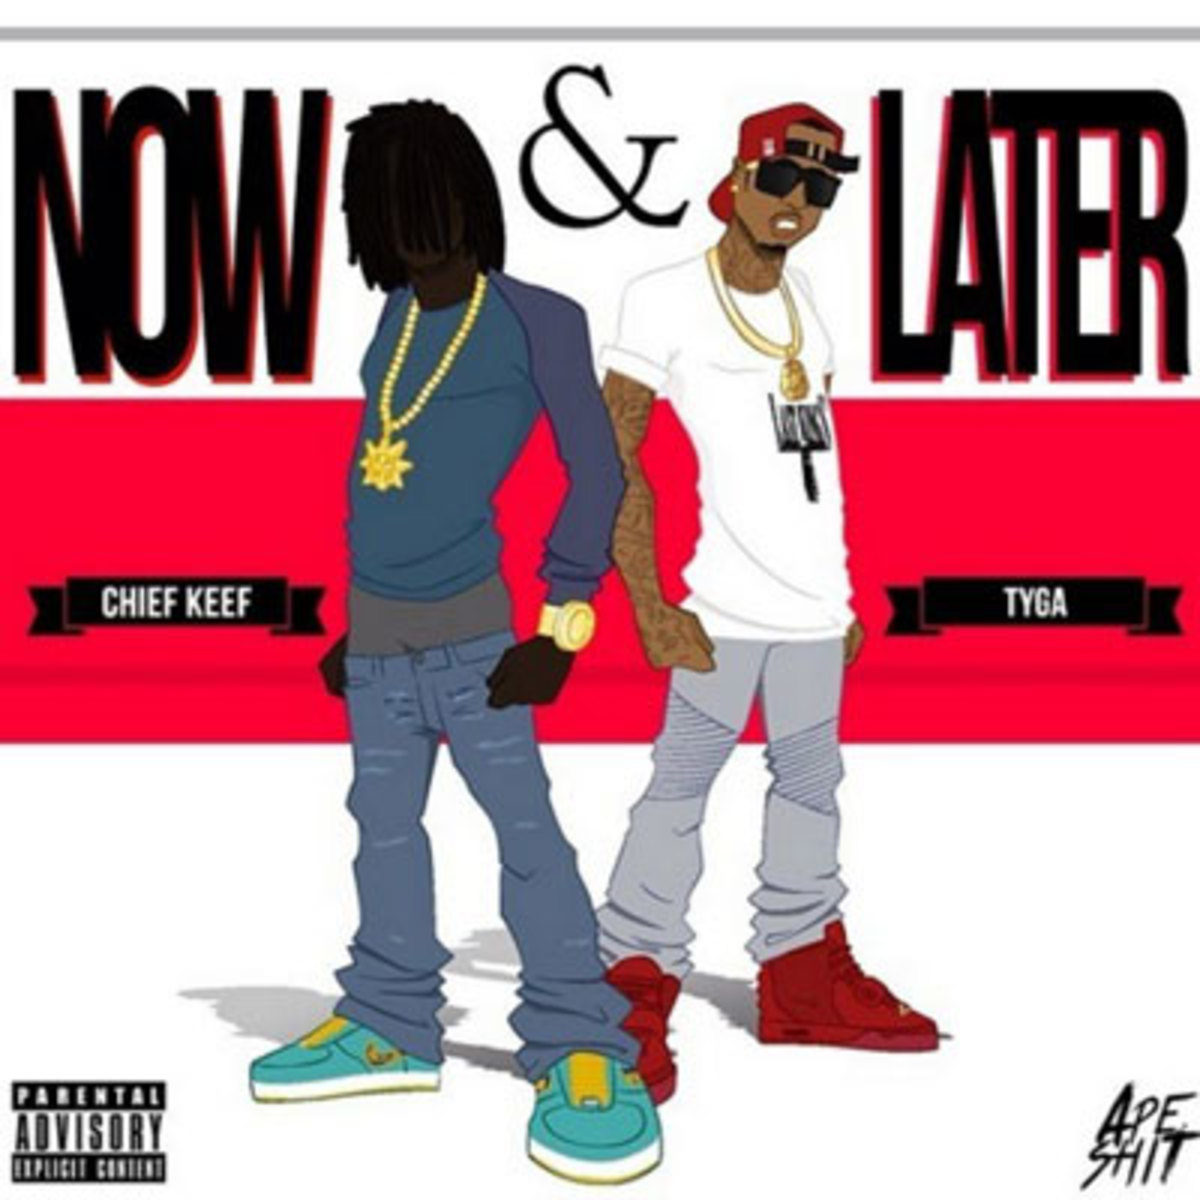 chiefkeef-nowlater.jpg